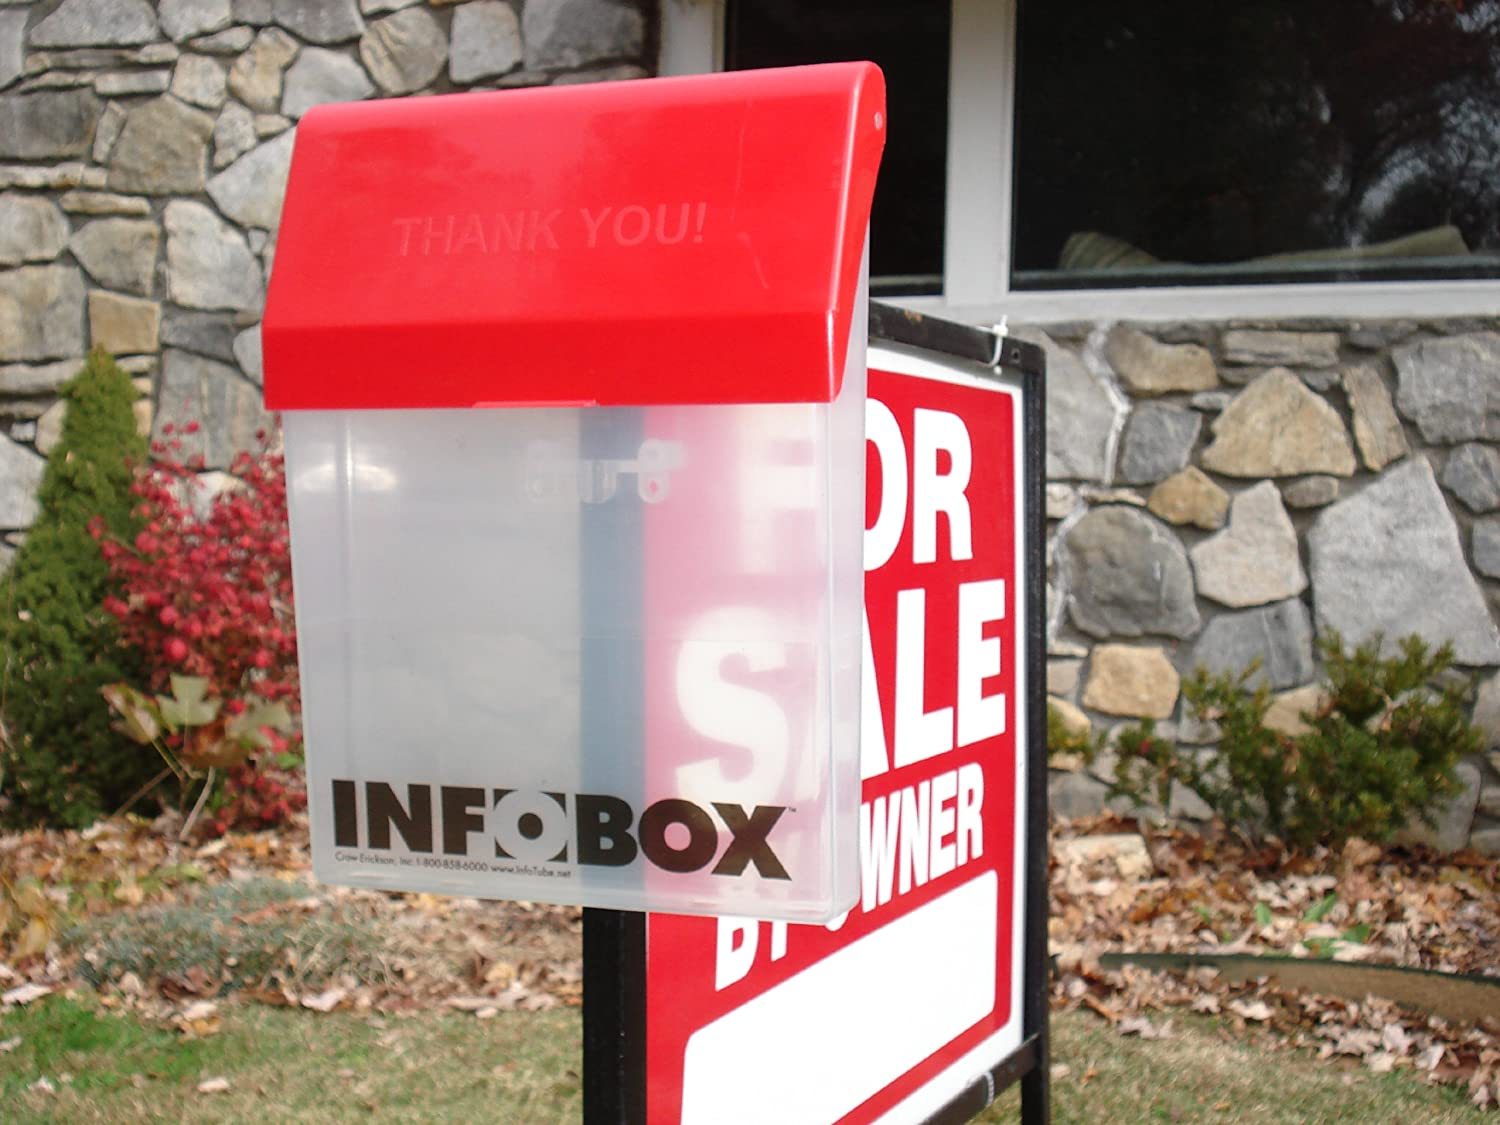 The Infobox Outdoor Document Holder Real Estate Residential Electrical Wiring Diagram 12x24 Brochure Box Office Products